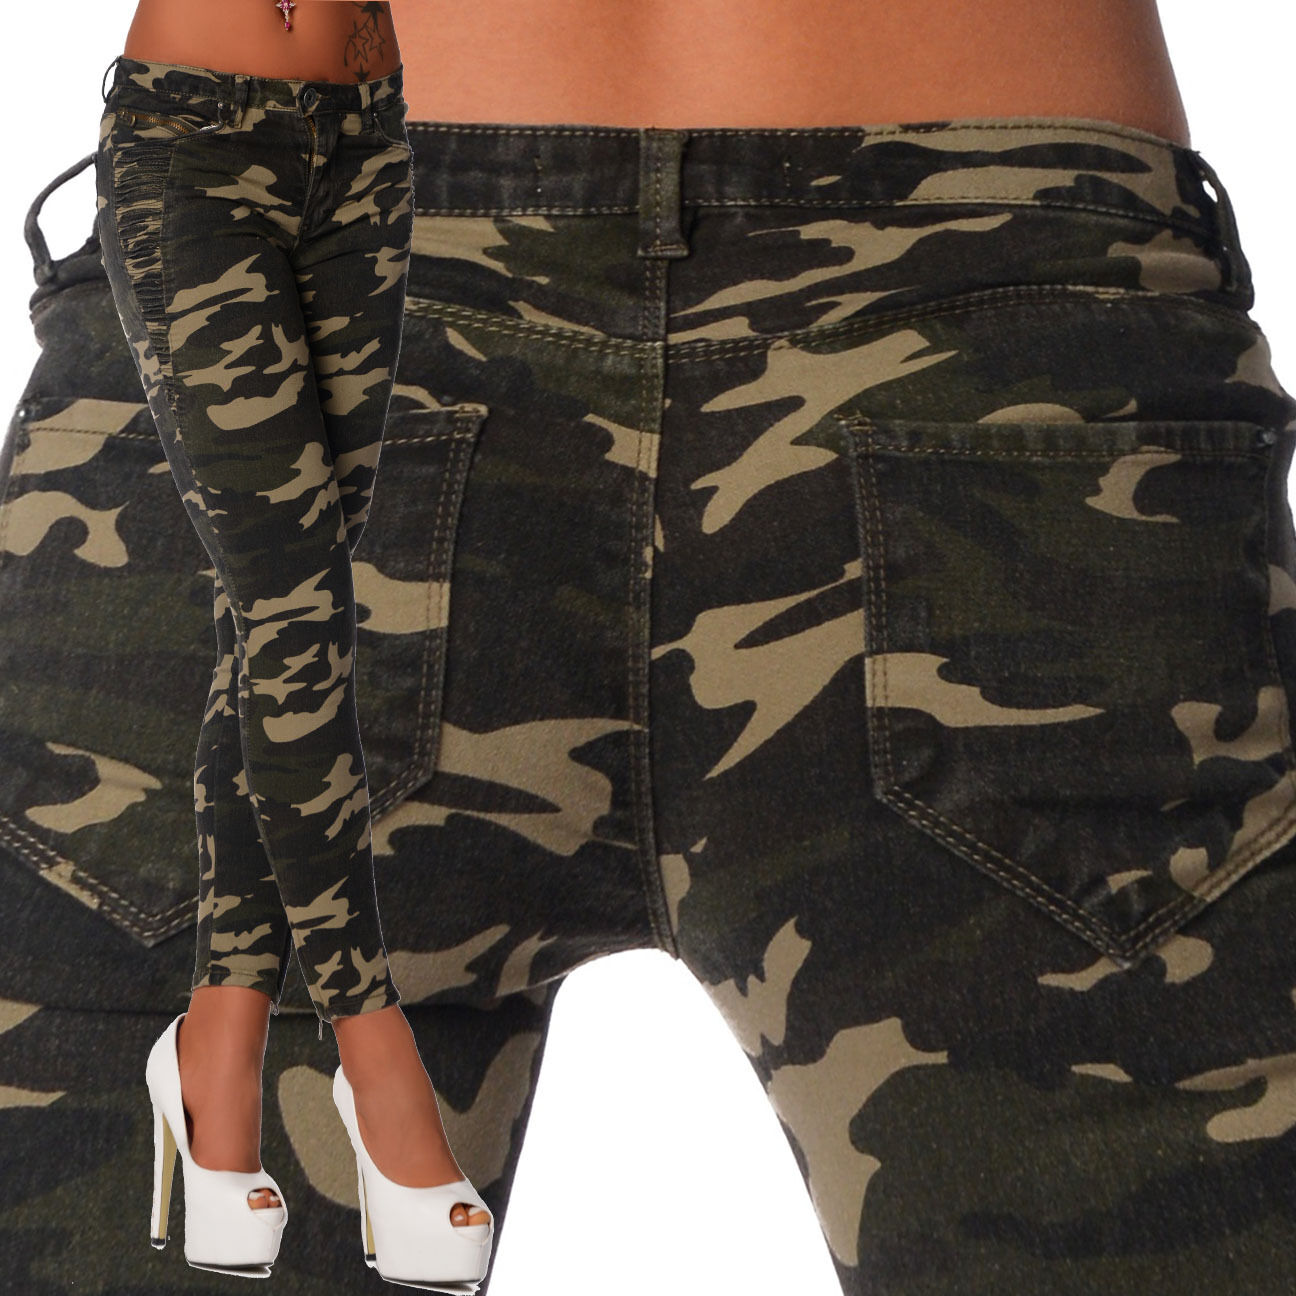 Sexy New Women's Setetchy Jeans Trousers Skinny Slim Army Military Print S 807